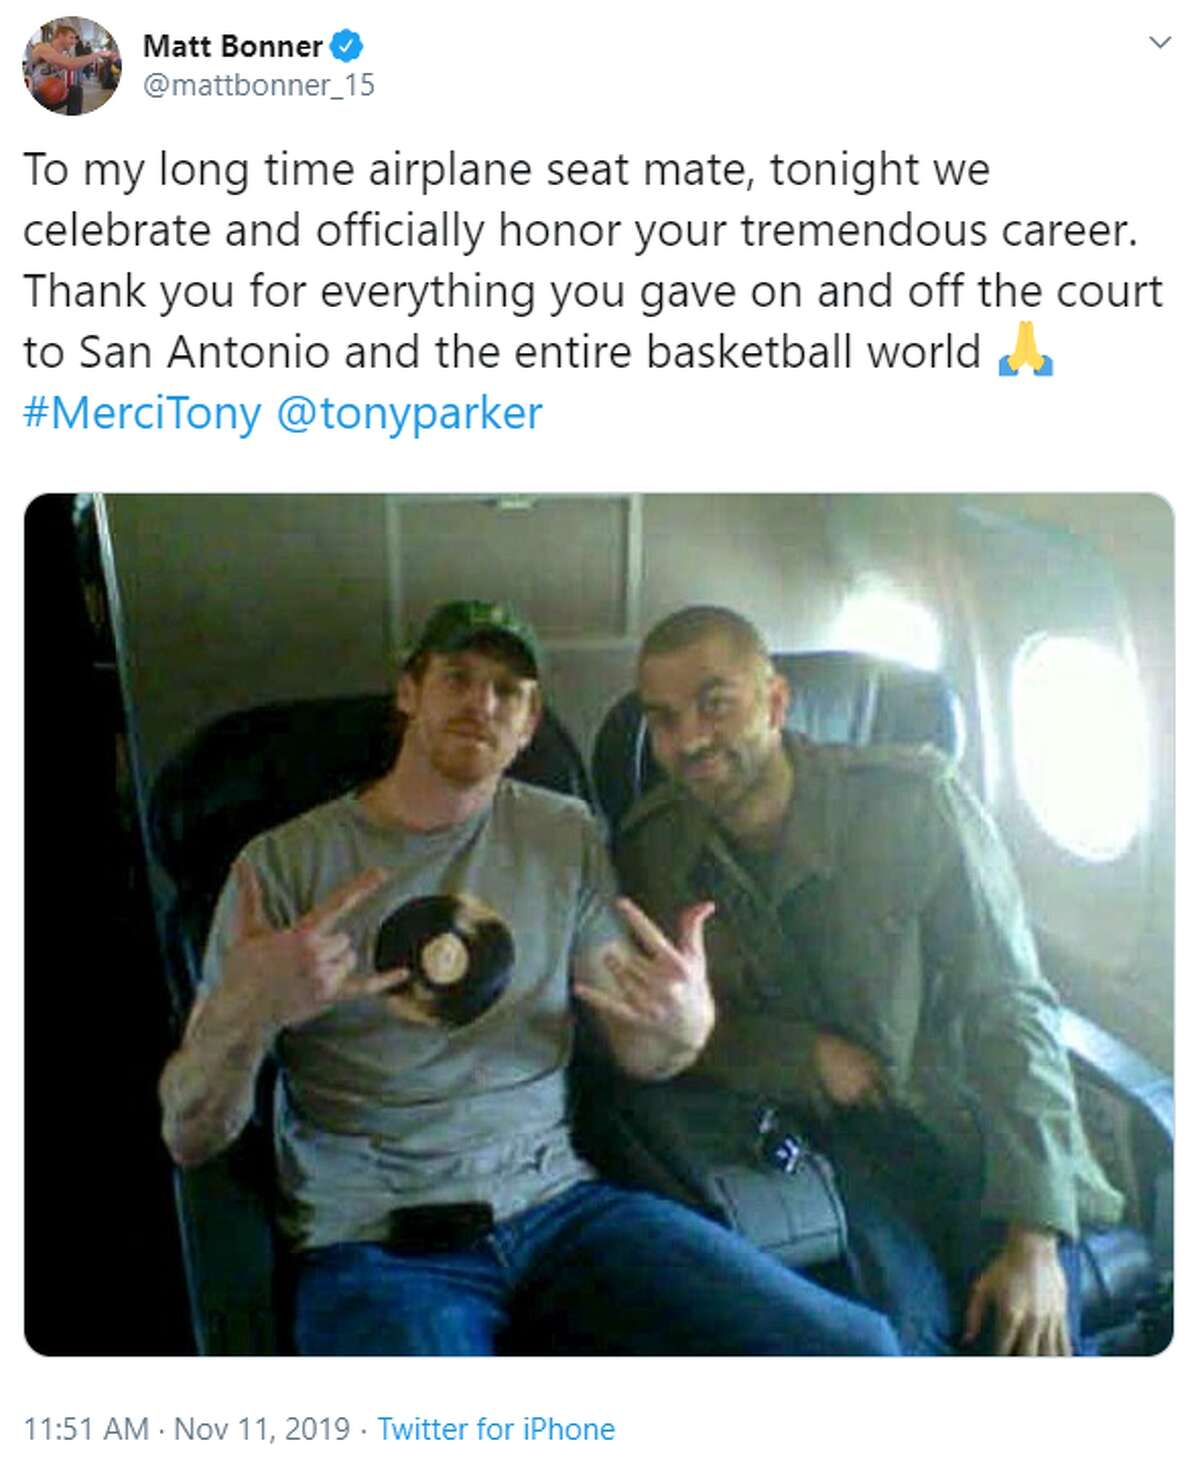 @mattbonner_15: To my long time airplane seat mate, tonight we celebrate and officially honor your tremendous career. Thank you for everything you gave on and off the court to San Antonio and the entire basketball world #MerciTony @tonyparker